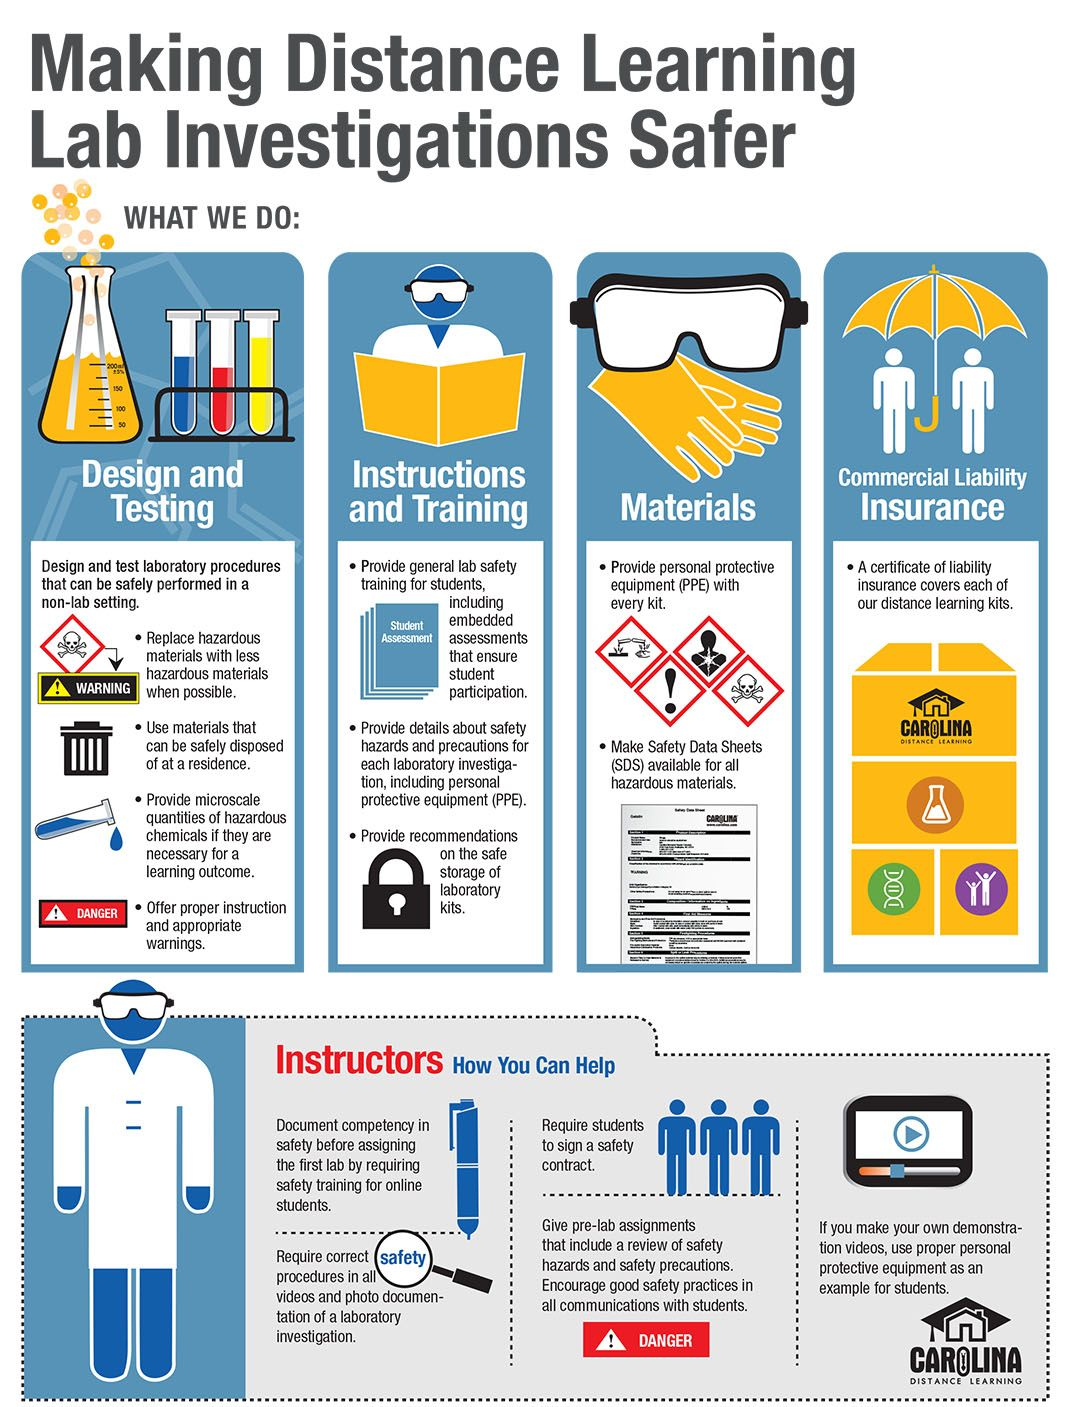 Infographic: Making Distance Learning Lab Investigations Safer